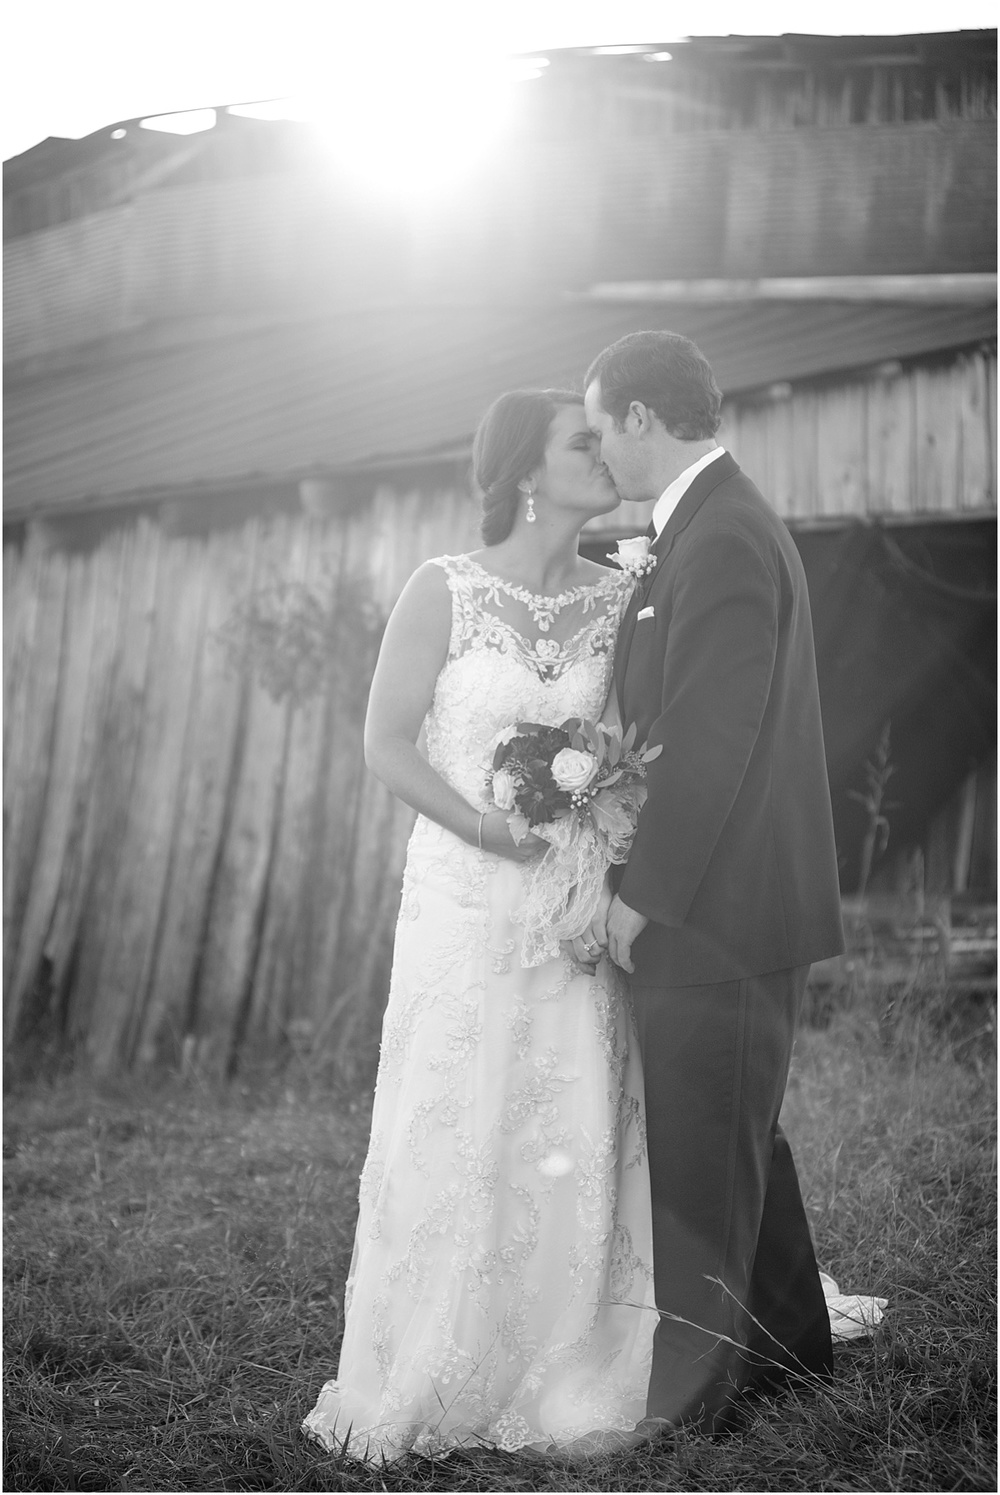 Greg Smit Photography Nashville wedding photographer Tomlinson Family Farm_0039